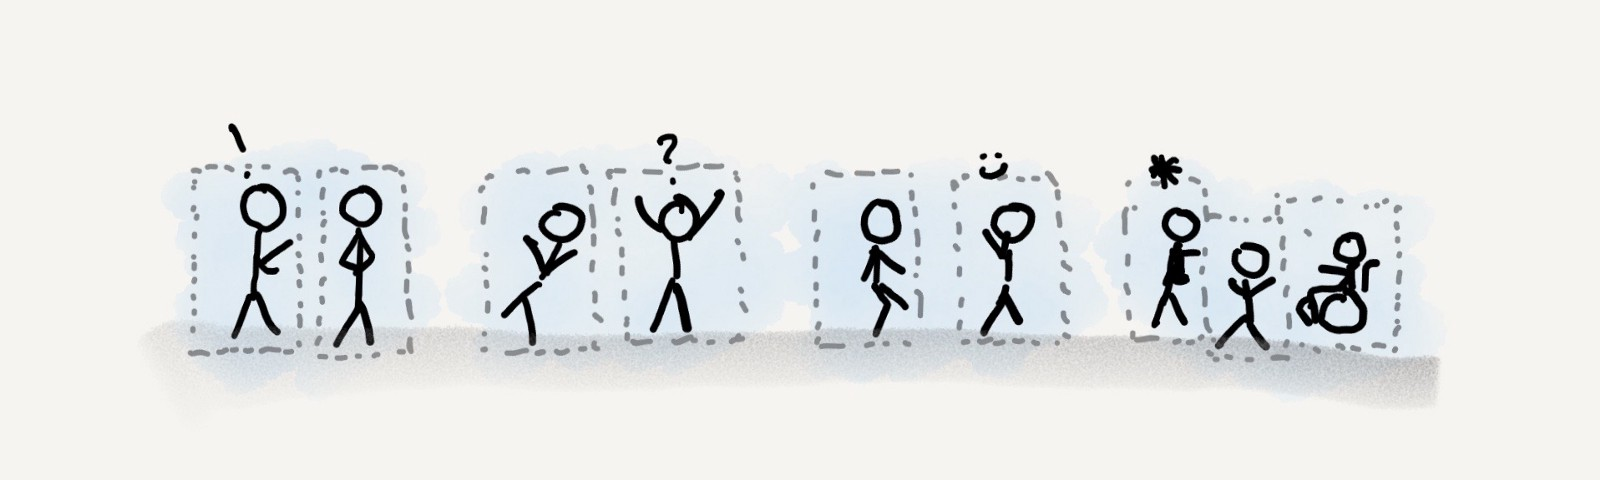 Four groups of stick figures chatting in a hallway, but with dashed grey borders around each person.